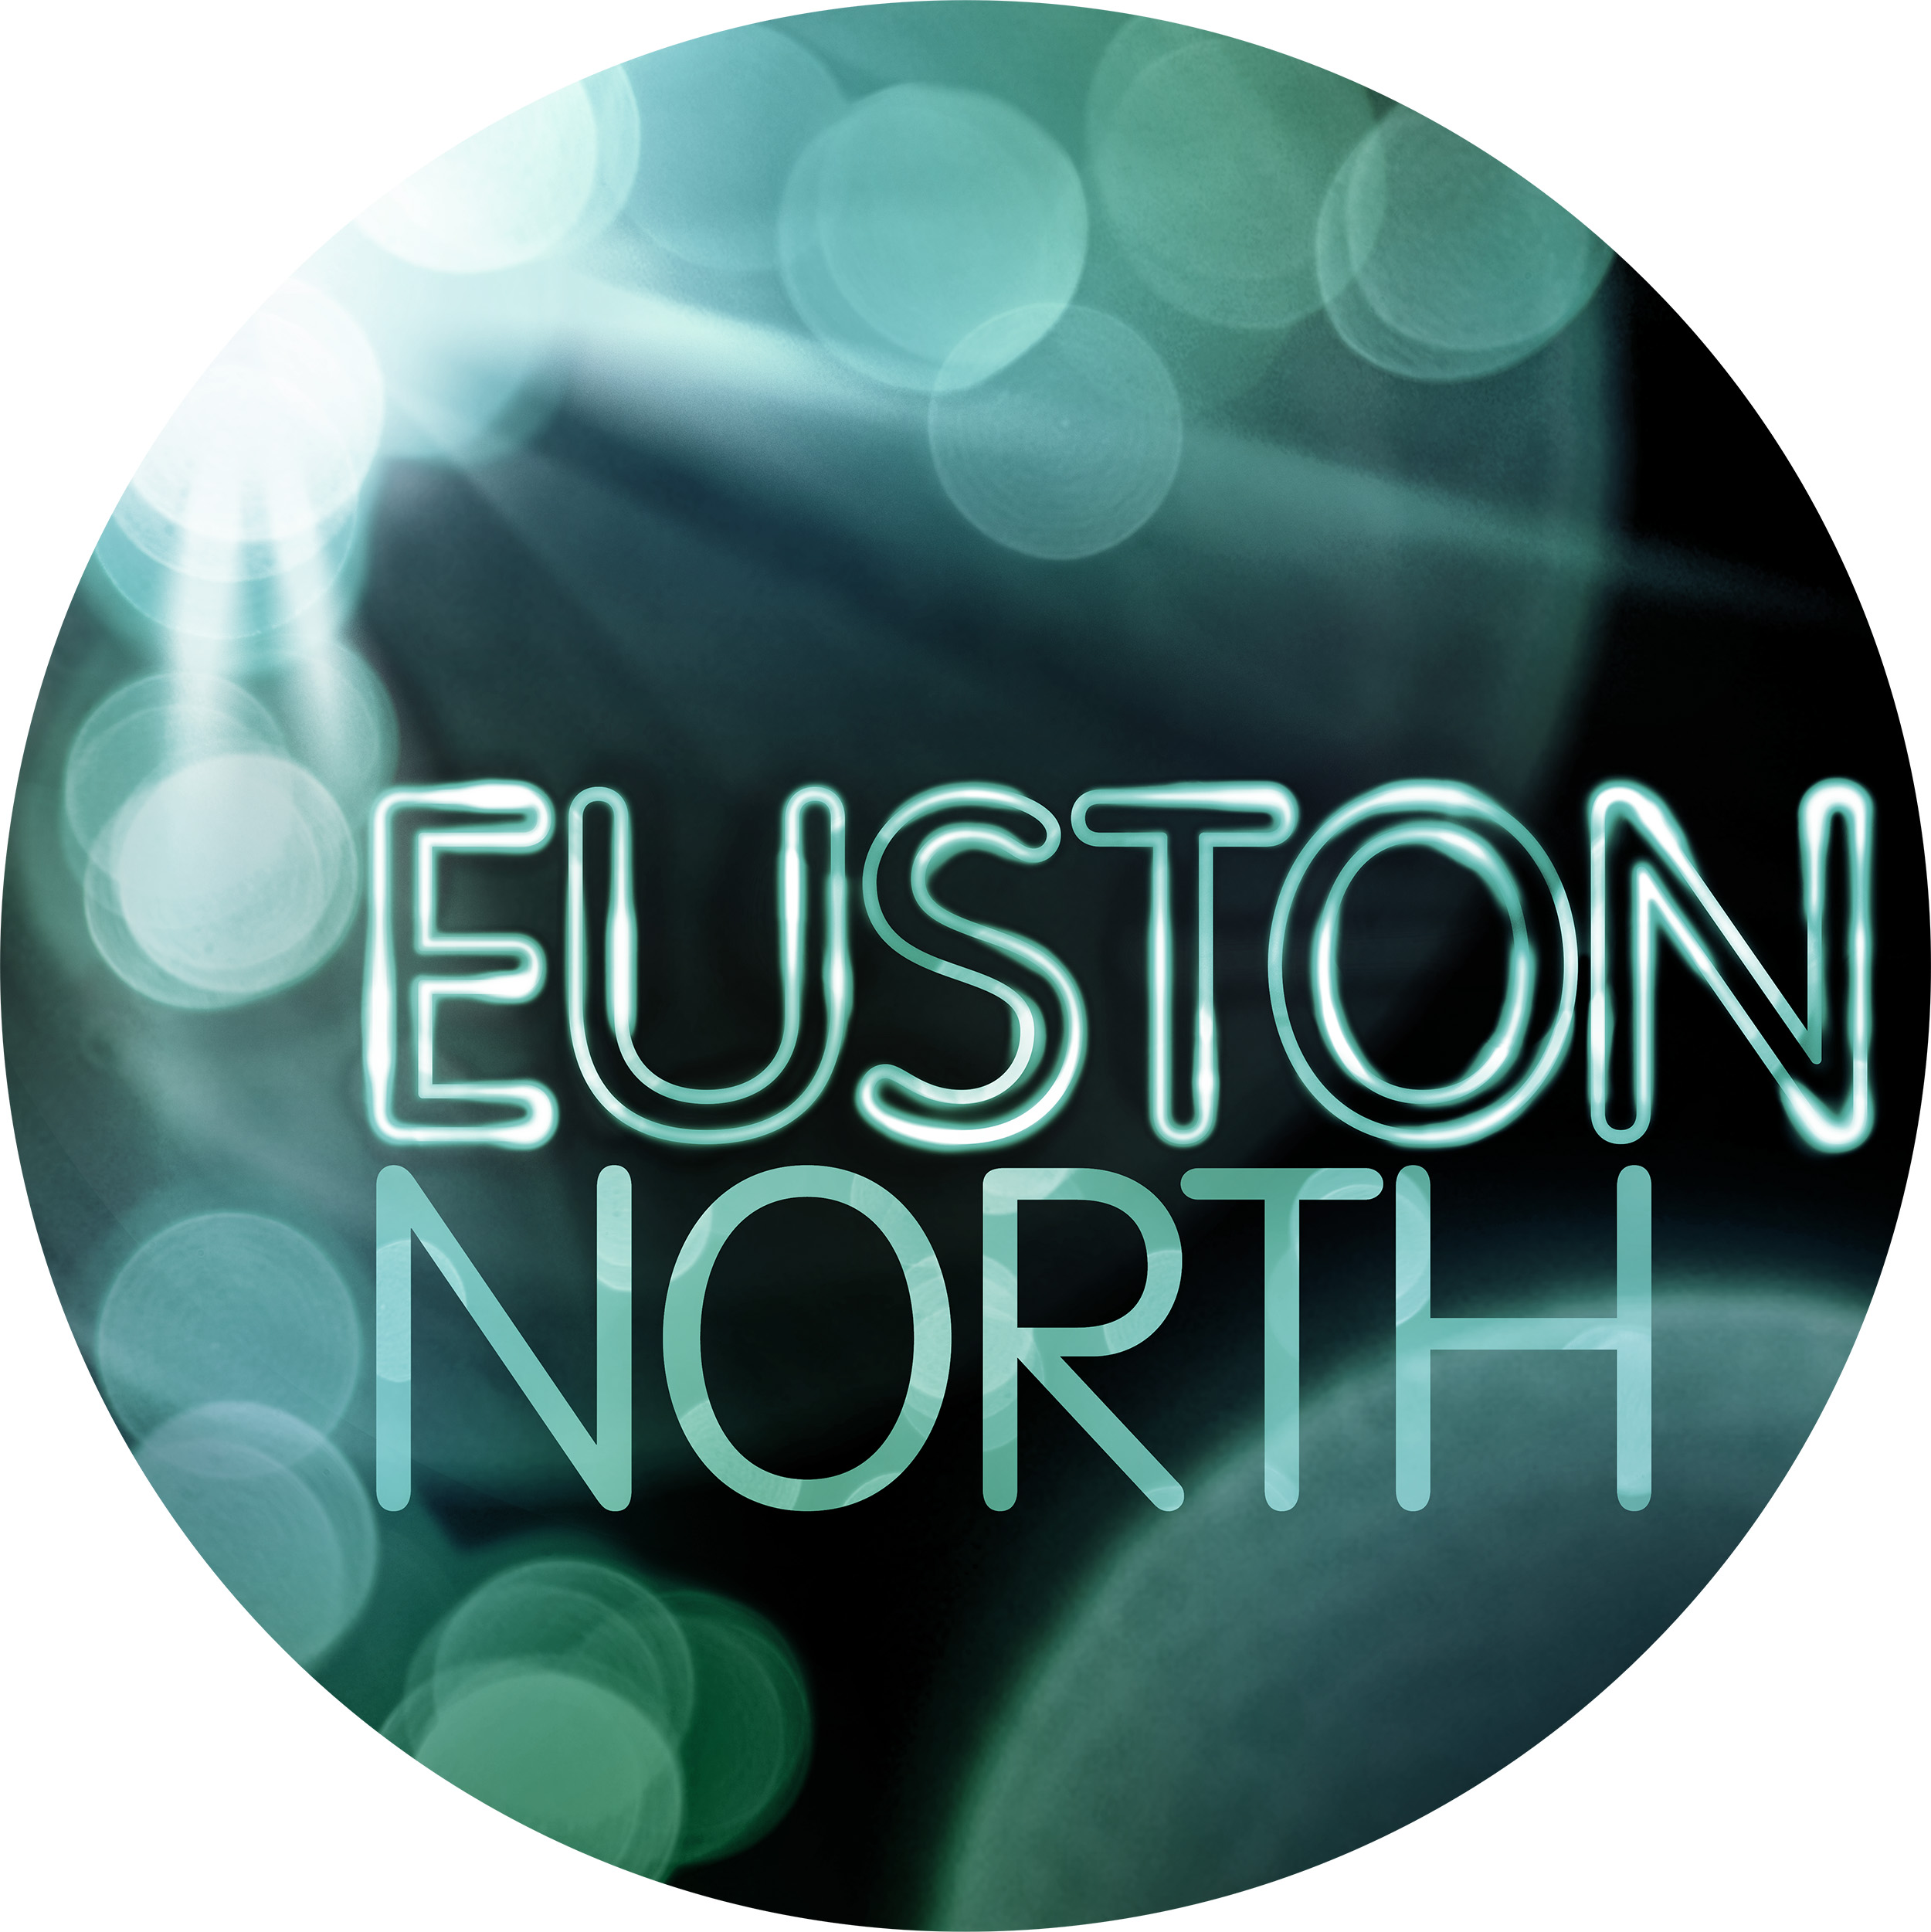 Euston North logo